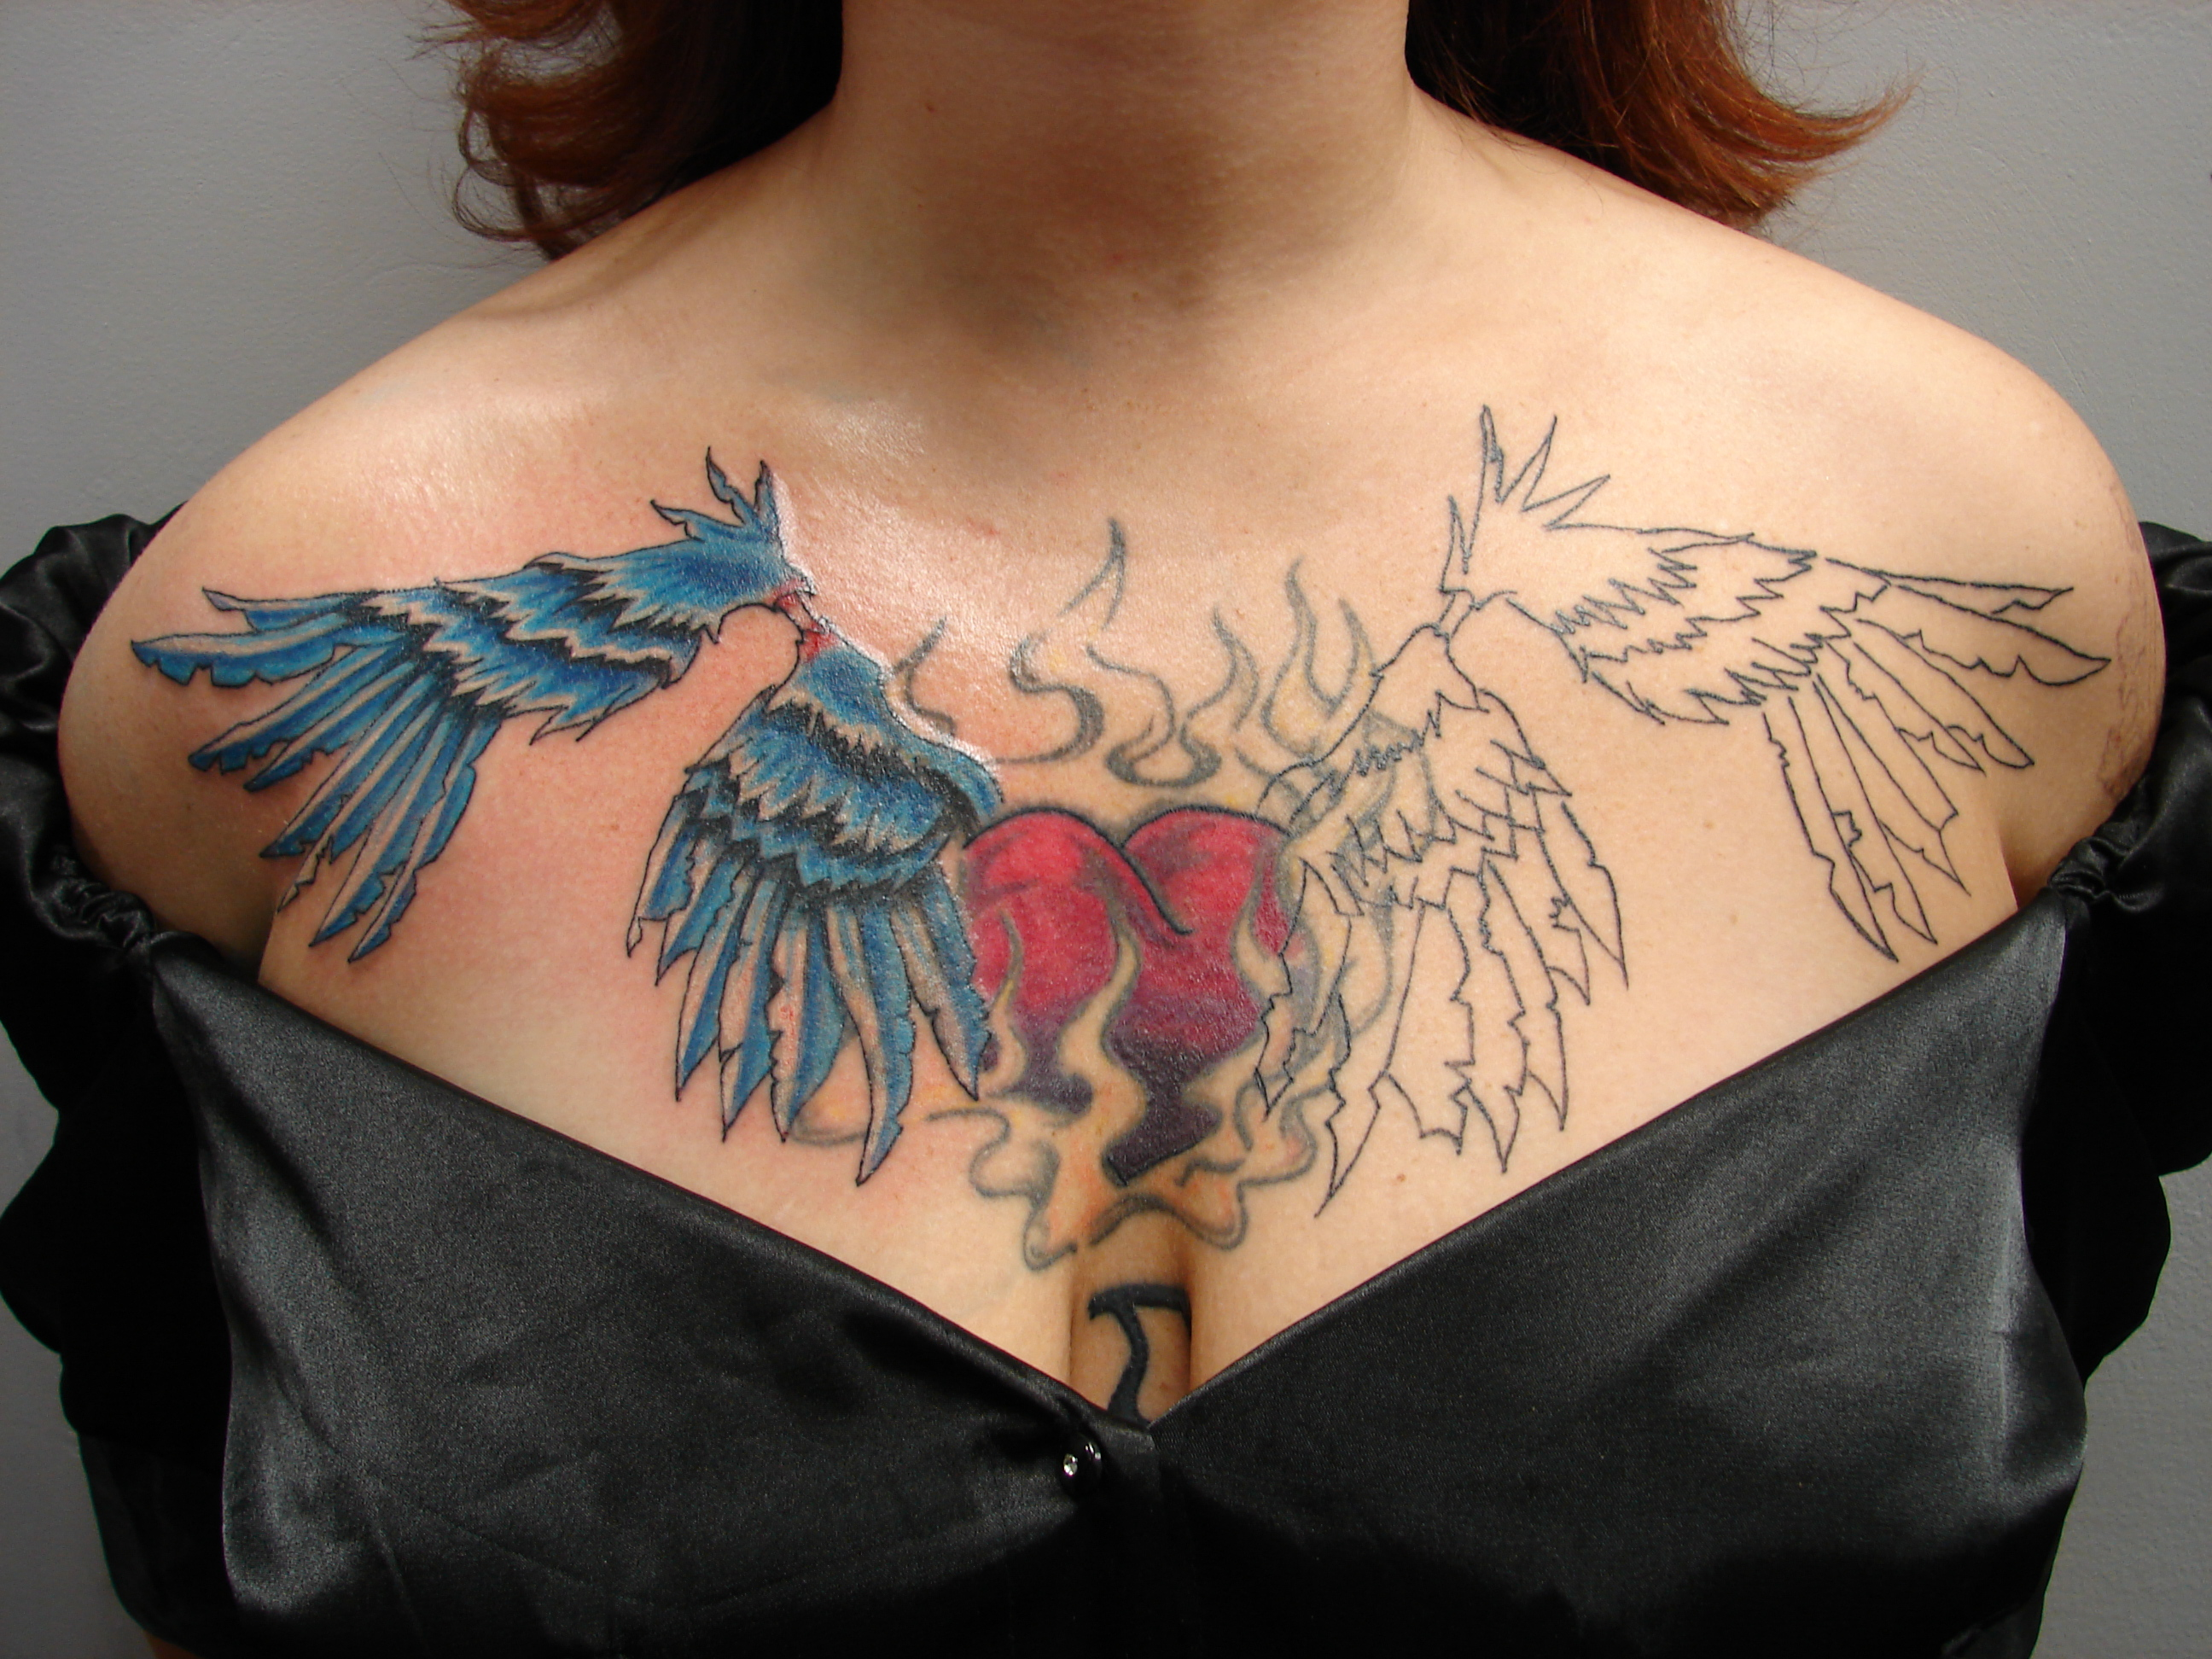 chest piece cover up repair